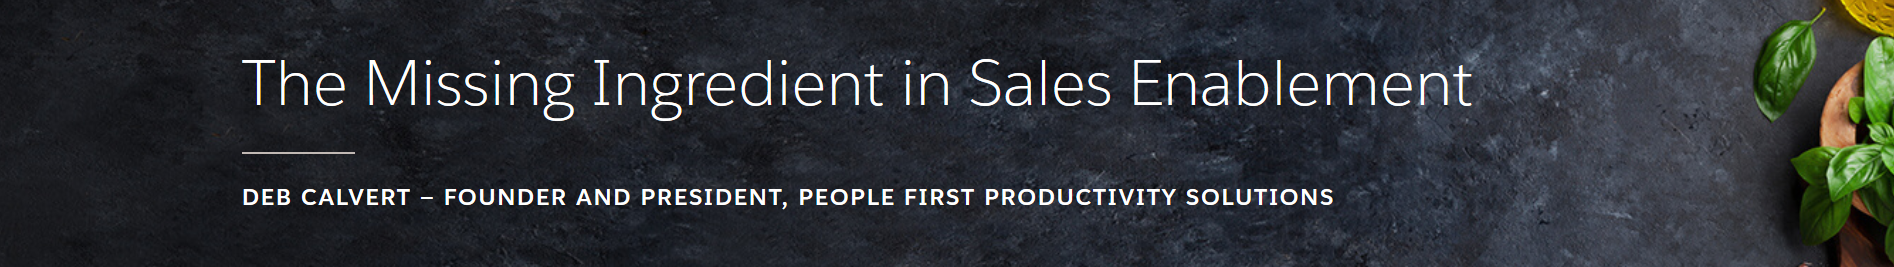 The Missing Ingredient in Sales Enablement